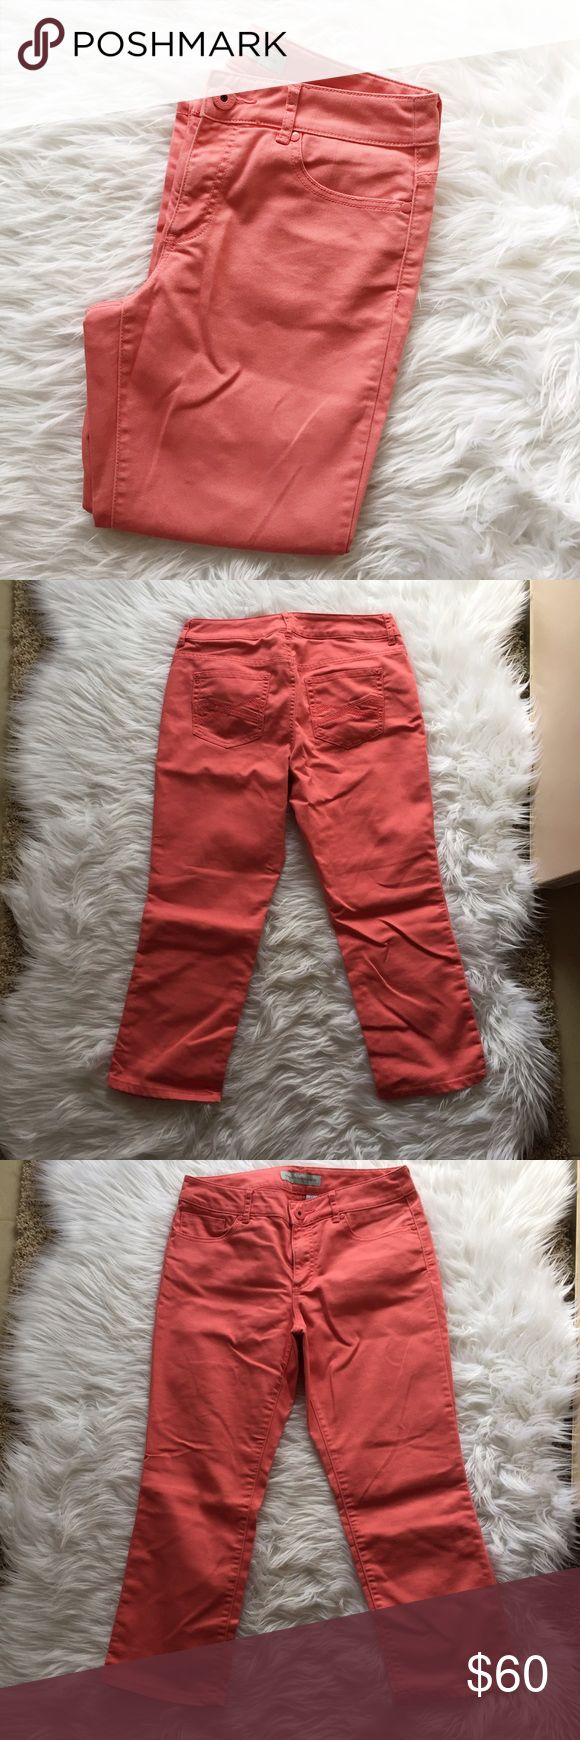 Chico's Coral Capris Gorgeous Chico's Coral Capris in excellent condition. Worn once or twice. Size 0 in Chico's which is actually about a size 4. Chico's Pants Capris